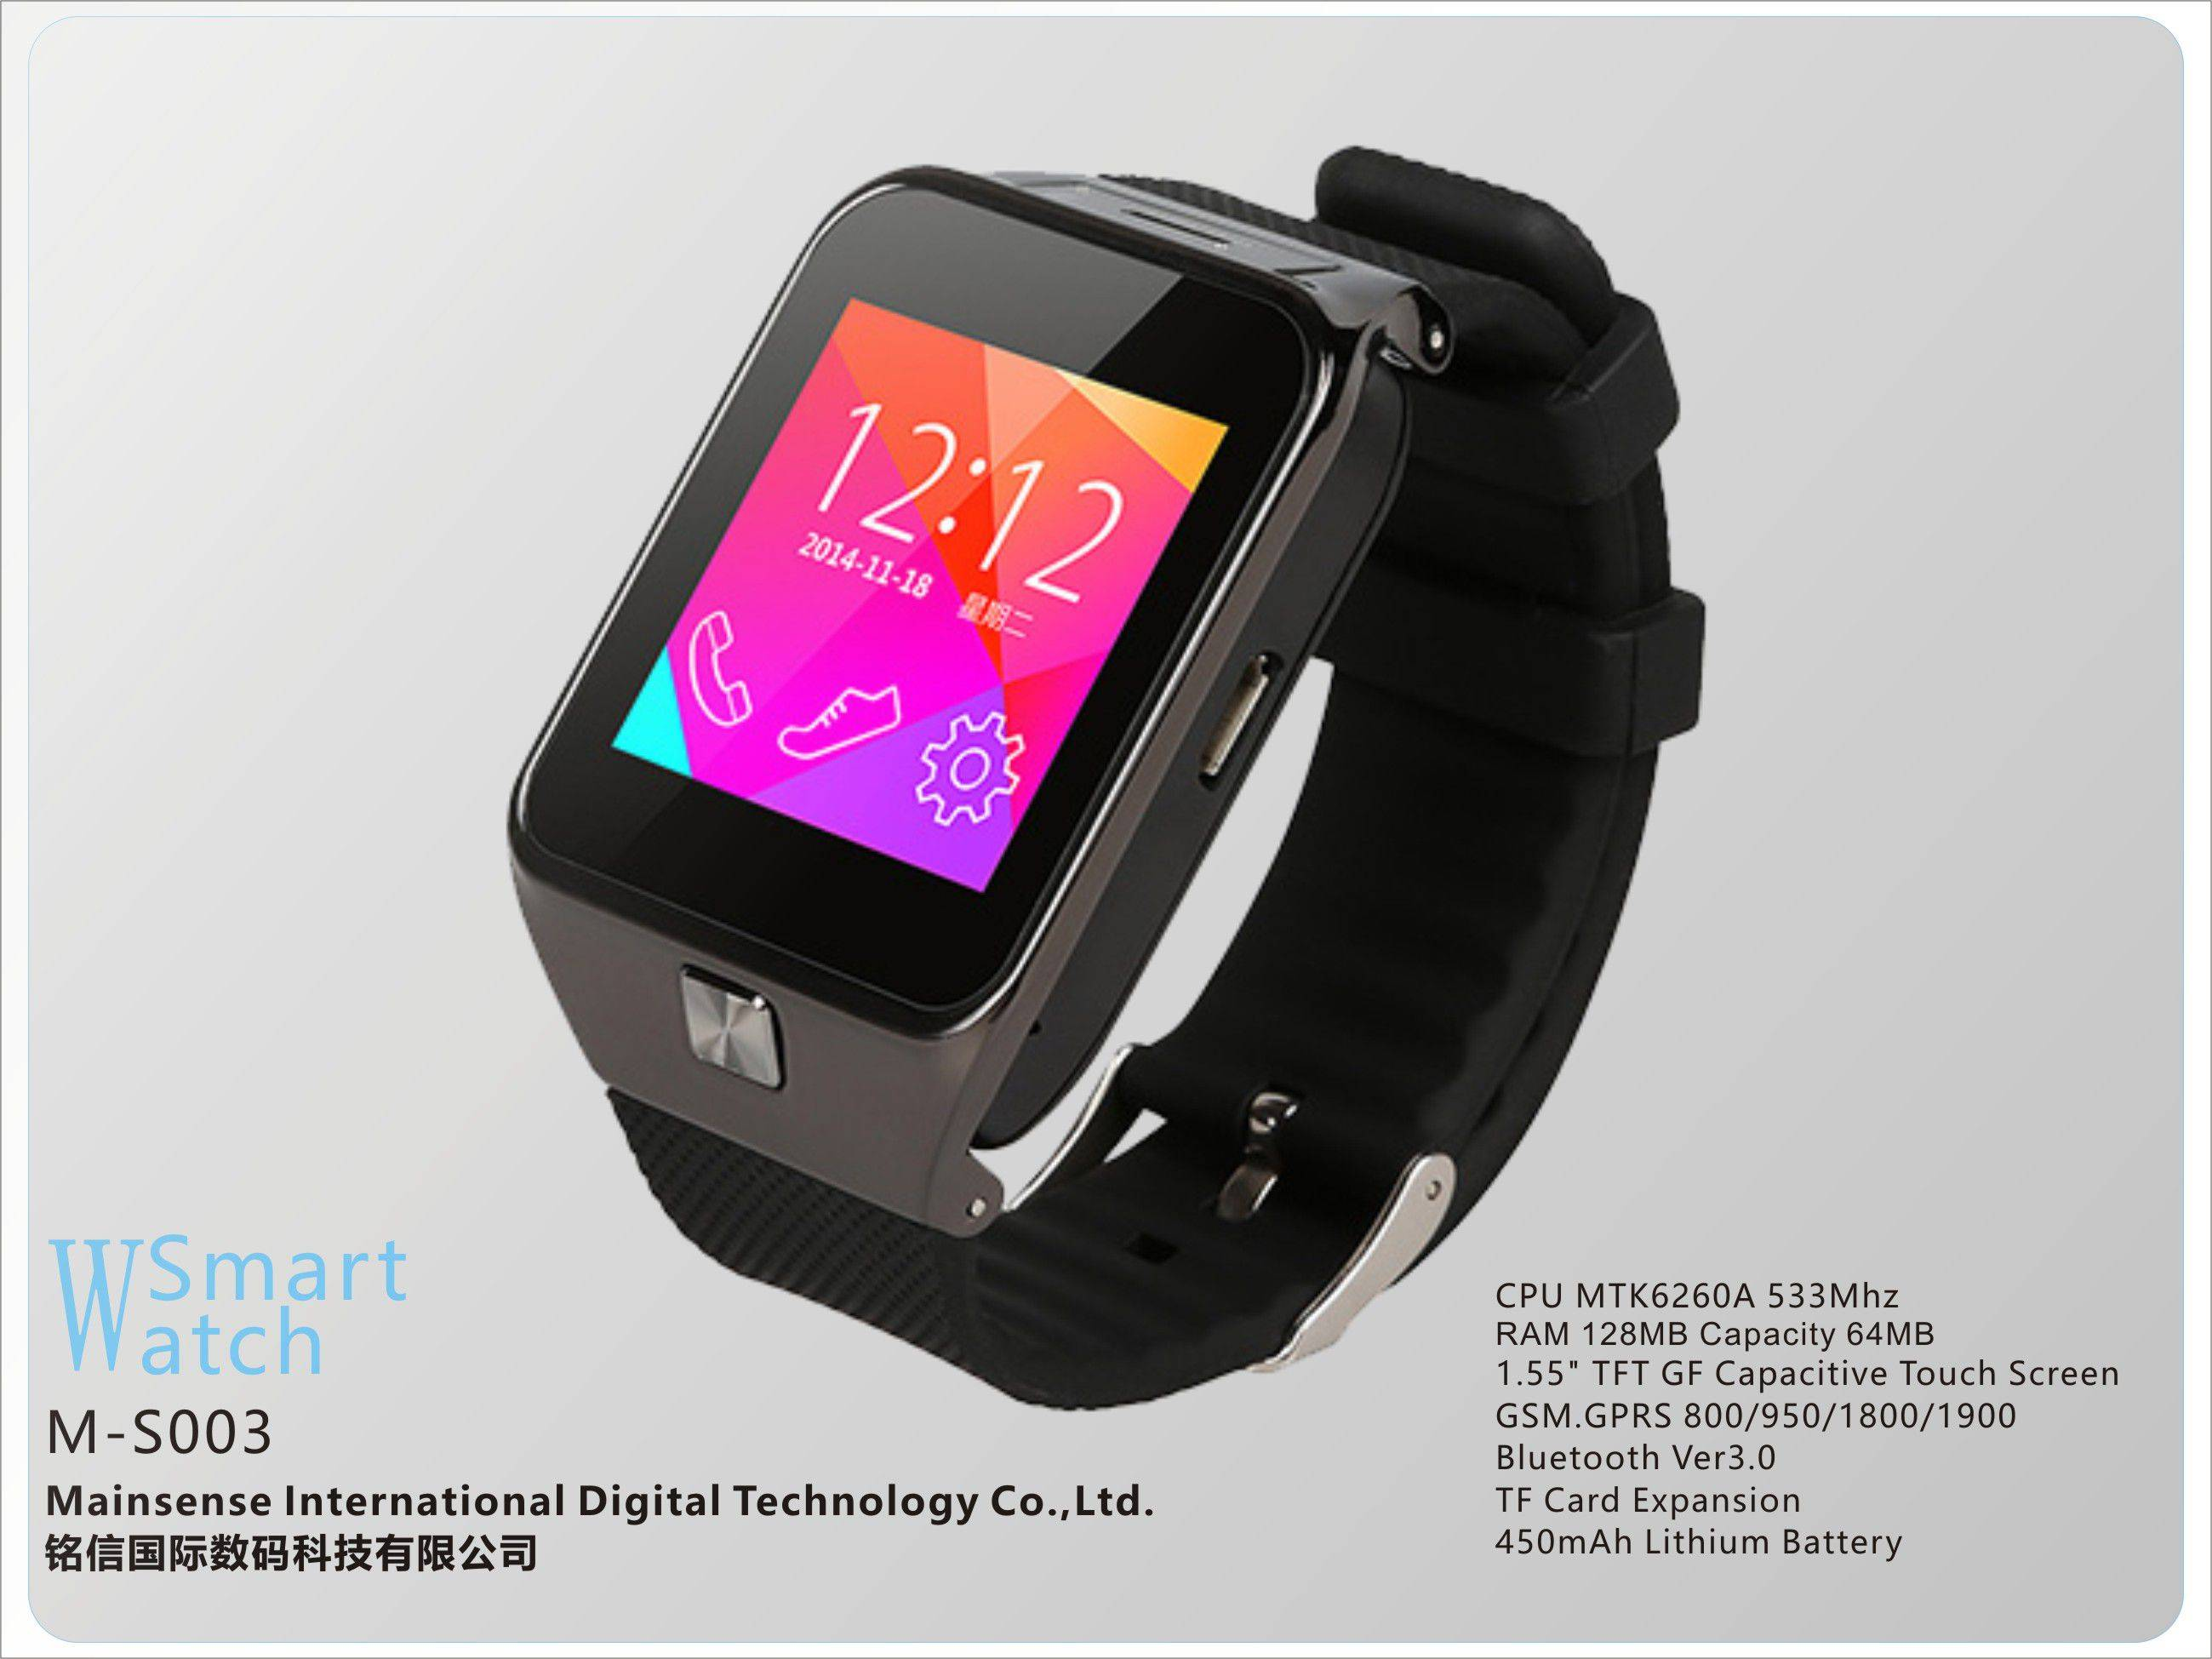 1.55Inch Smart Watch with GSM/GPRS Phone Function